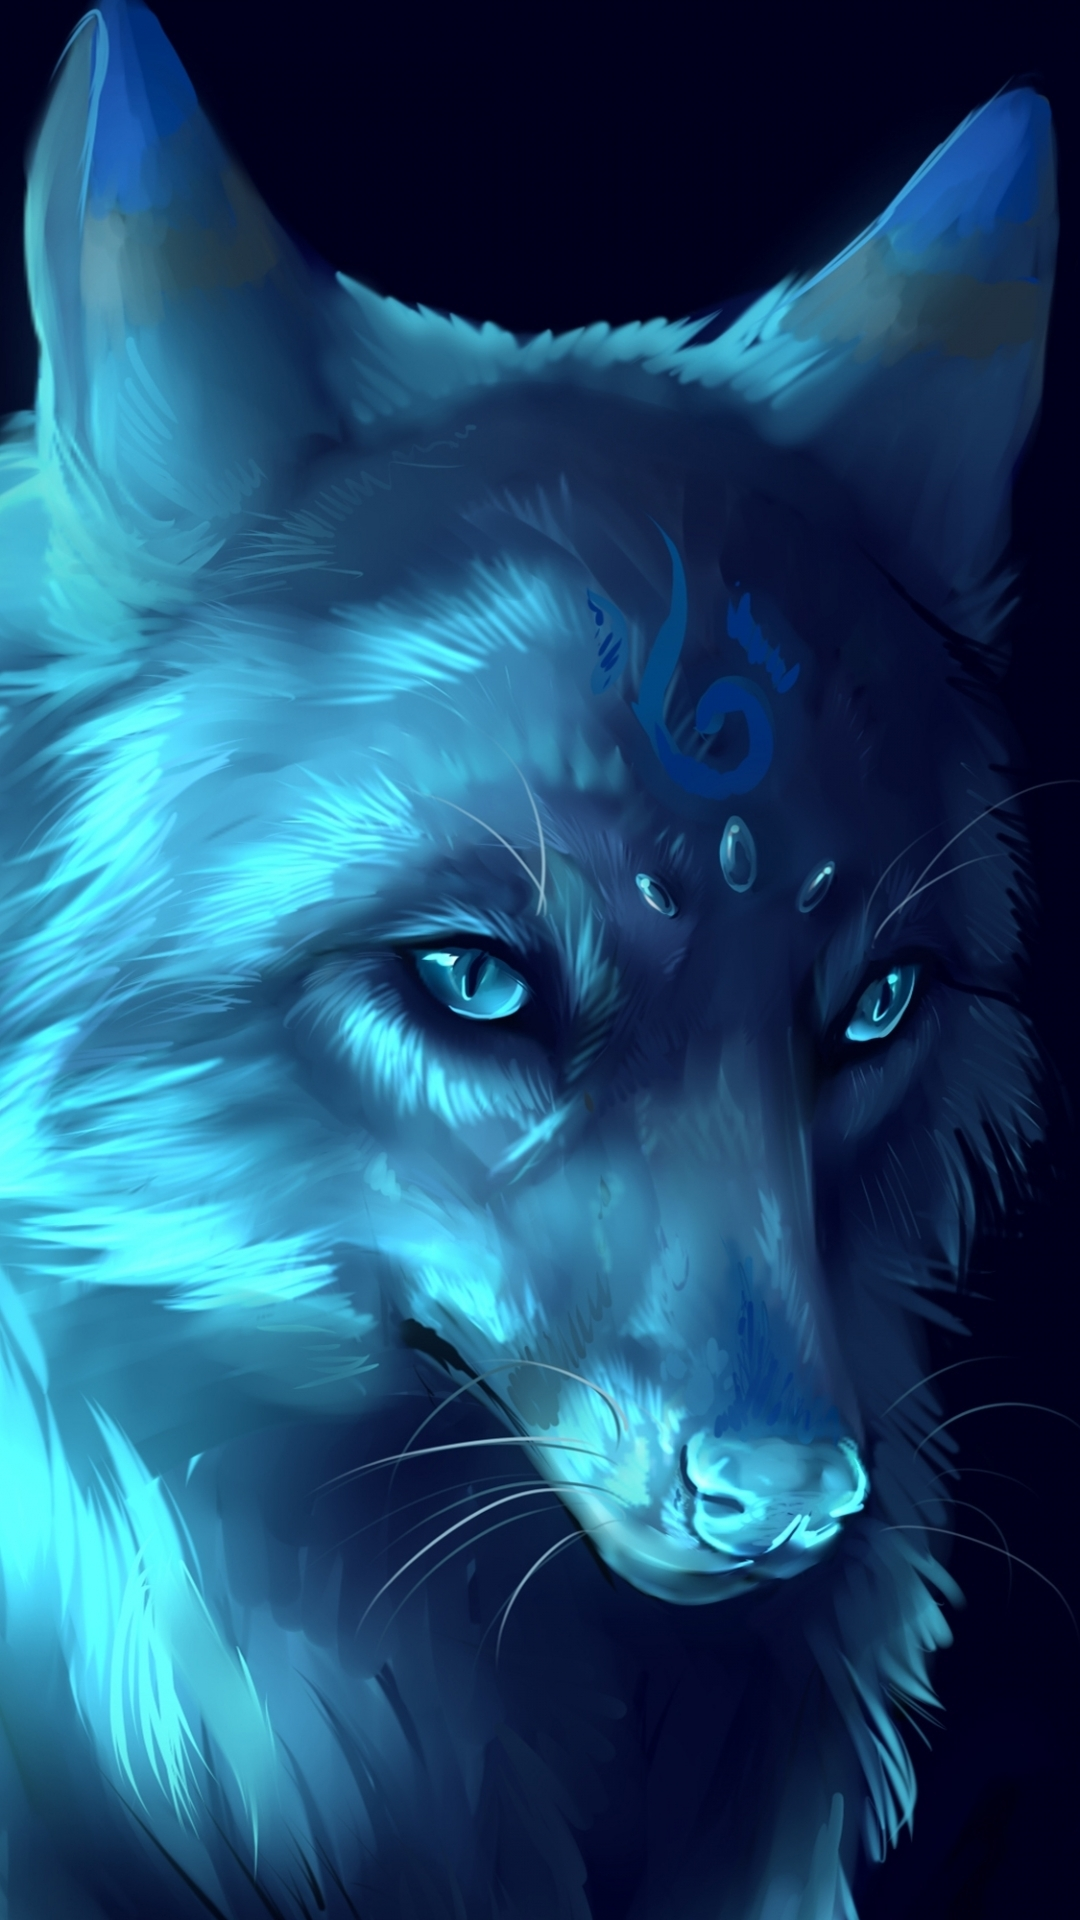 Awesome Phone Wallpaper Wolf - Animated Wolf Wallpaper Iphone , HD Wallpaper & Backgrounds